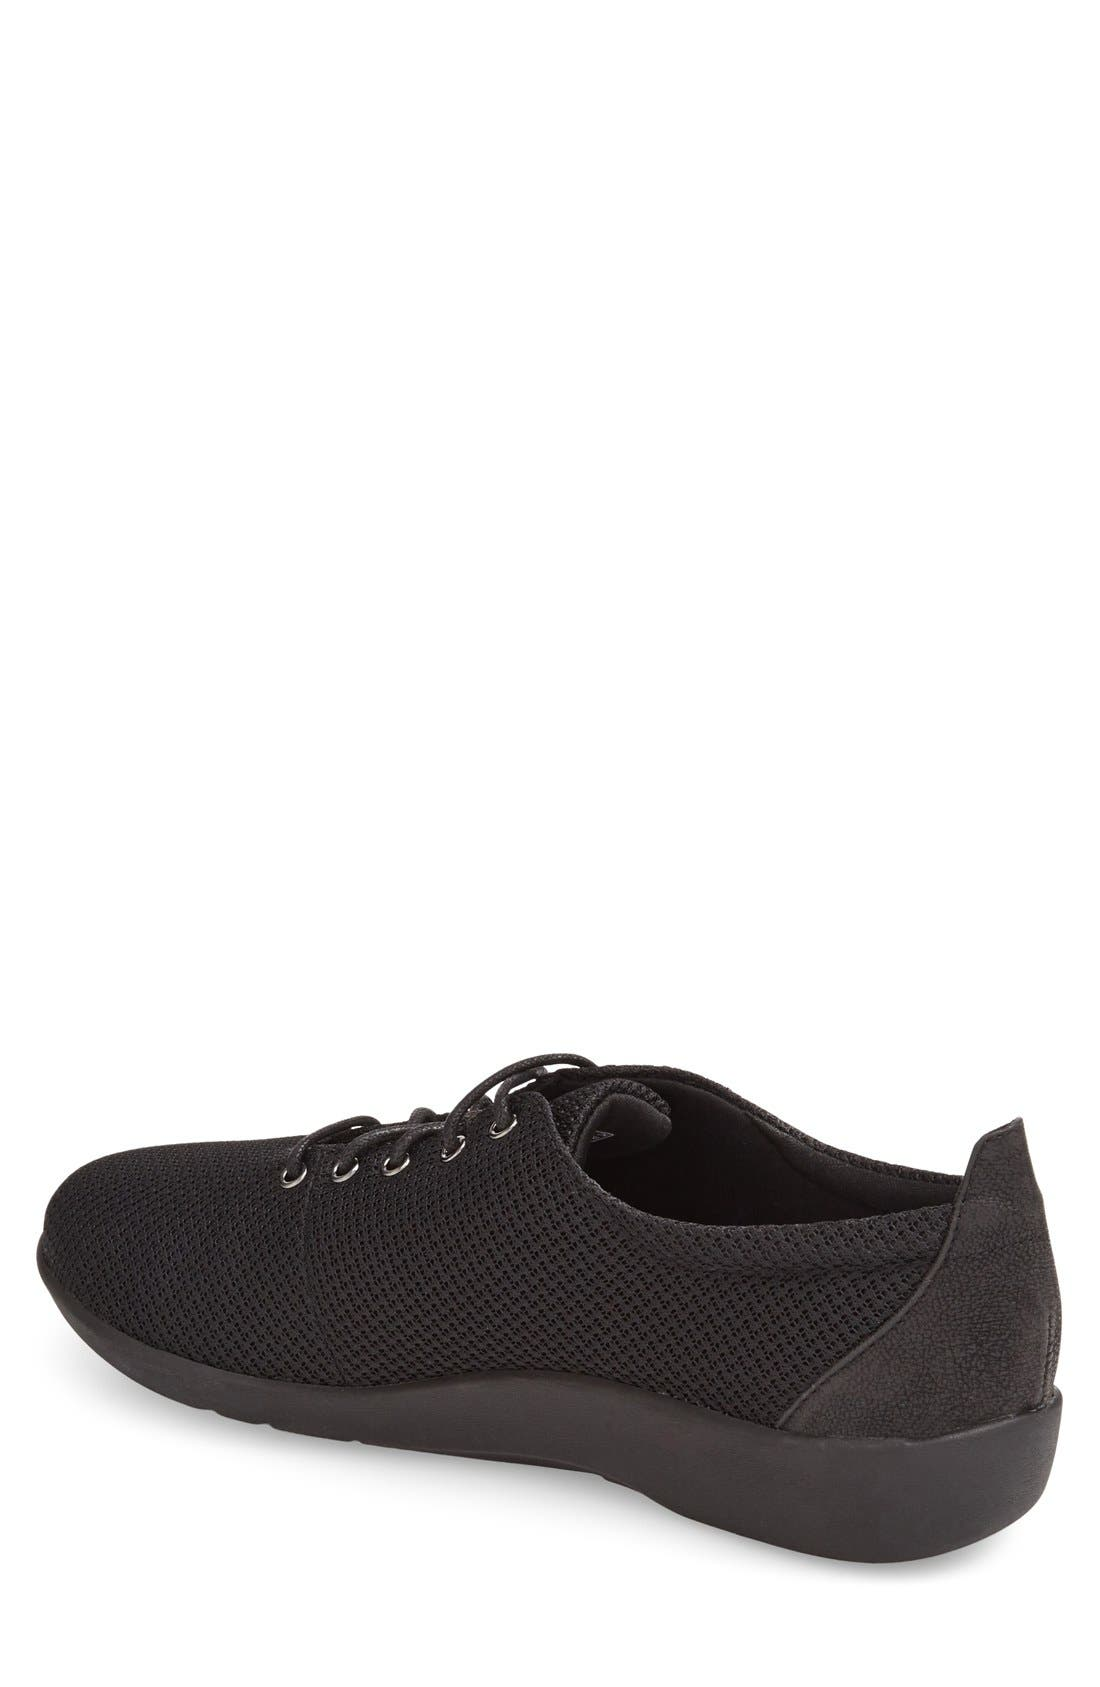 Clarks<sup>®</sup> 'Sillian - Tino' Sneaker,                             Alternate thumbnail 5, color,                             001